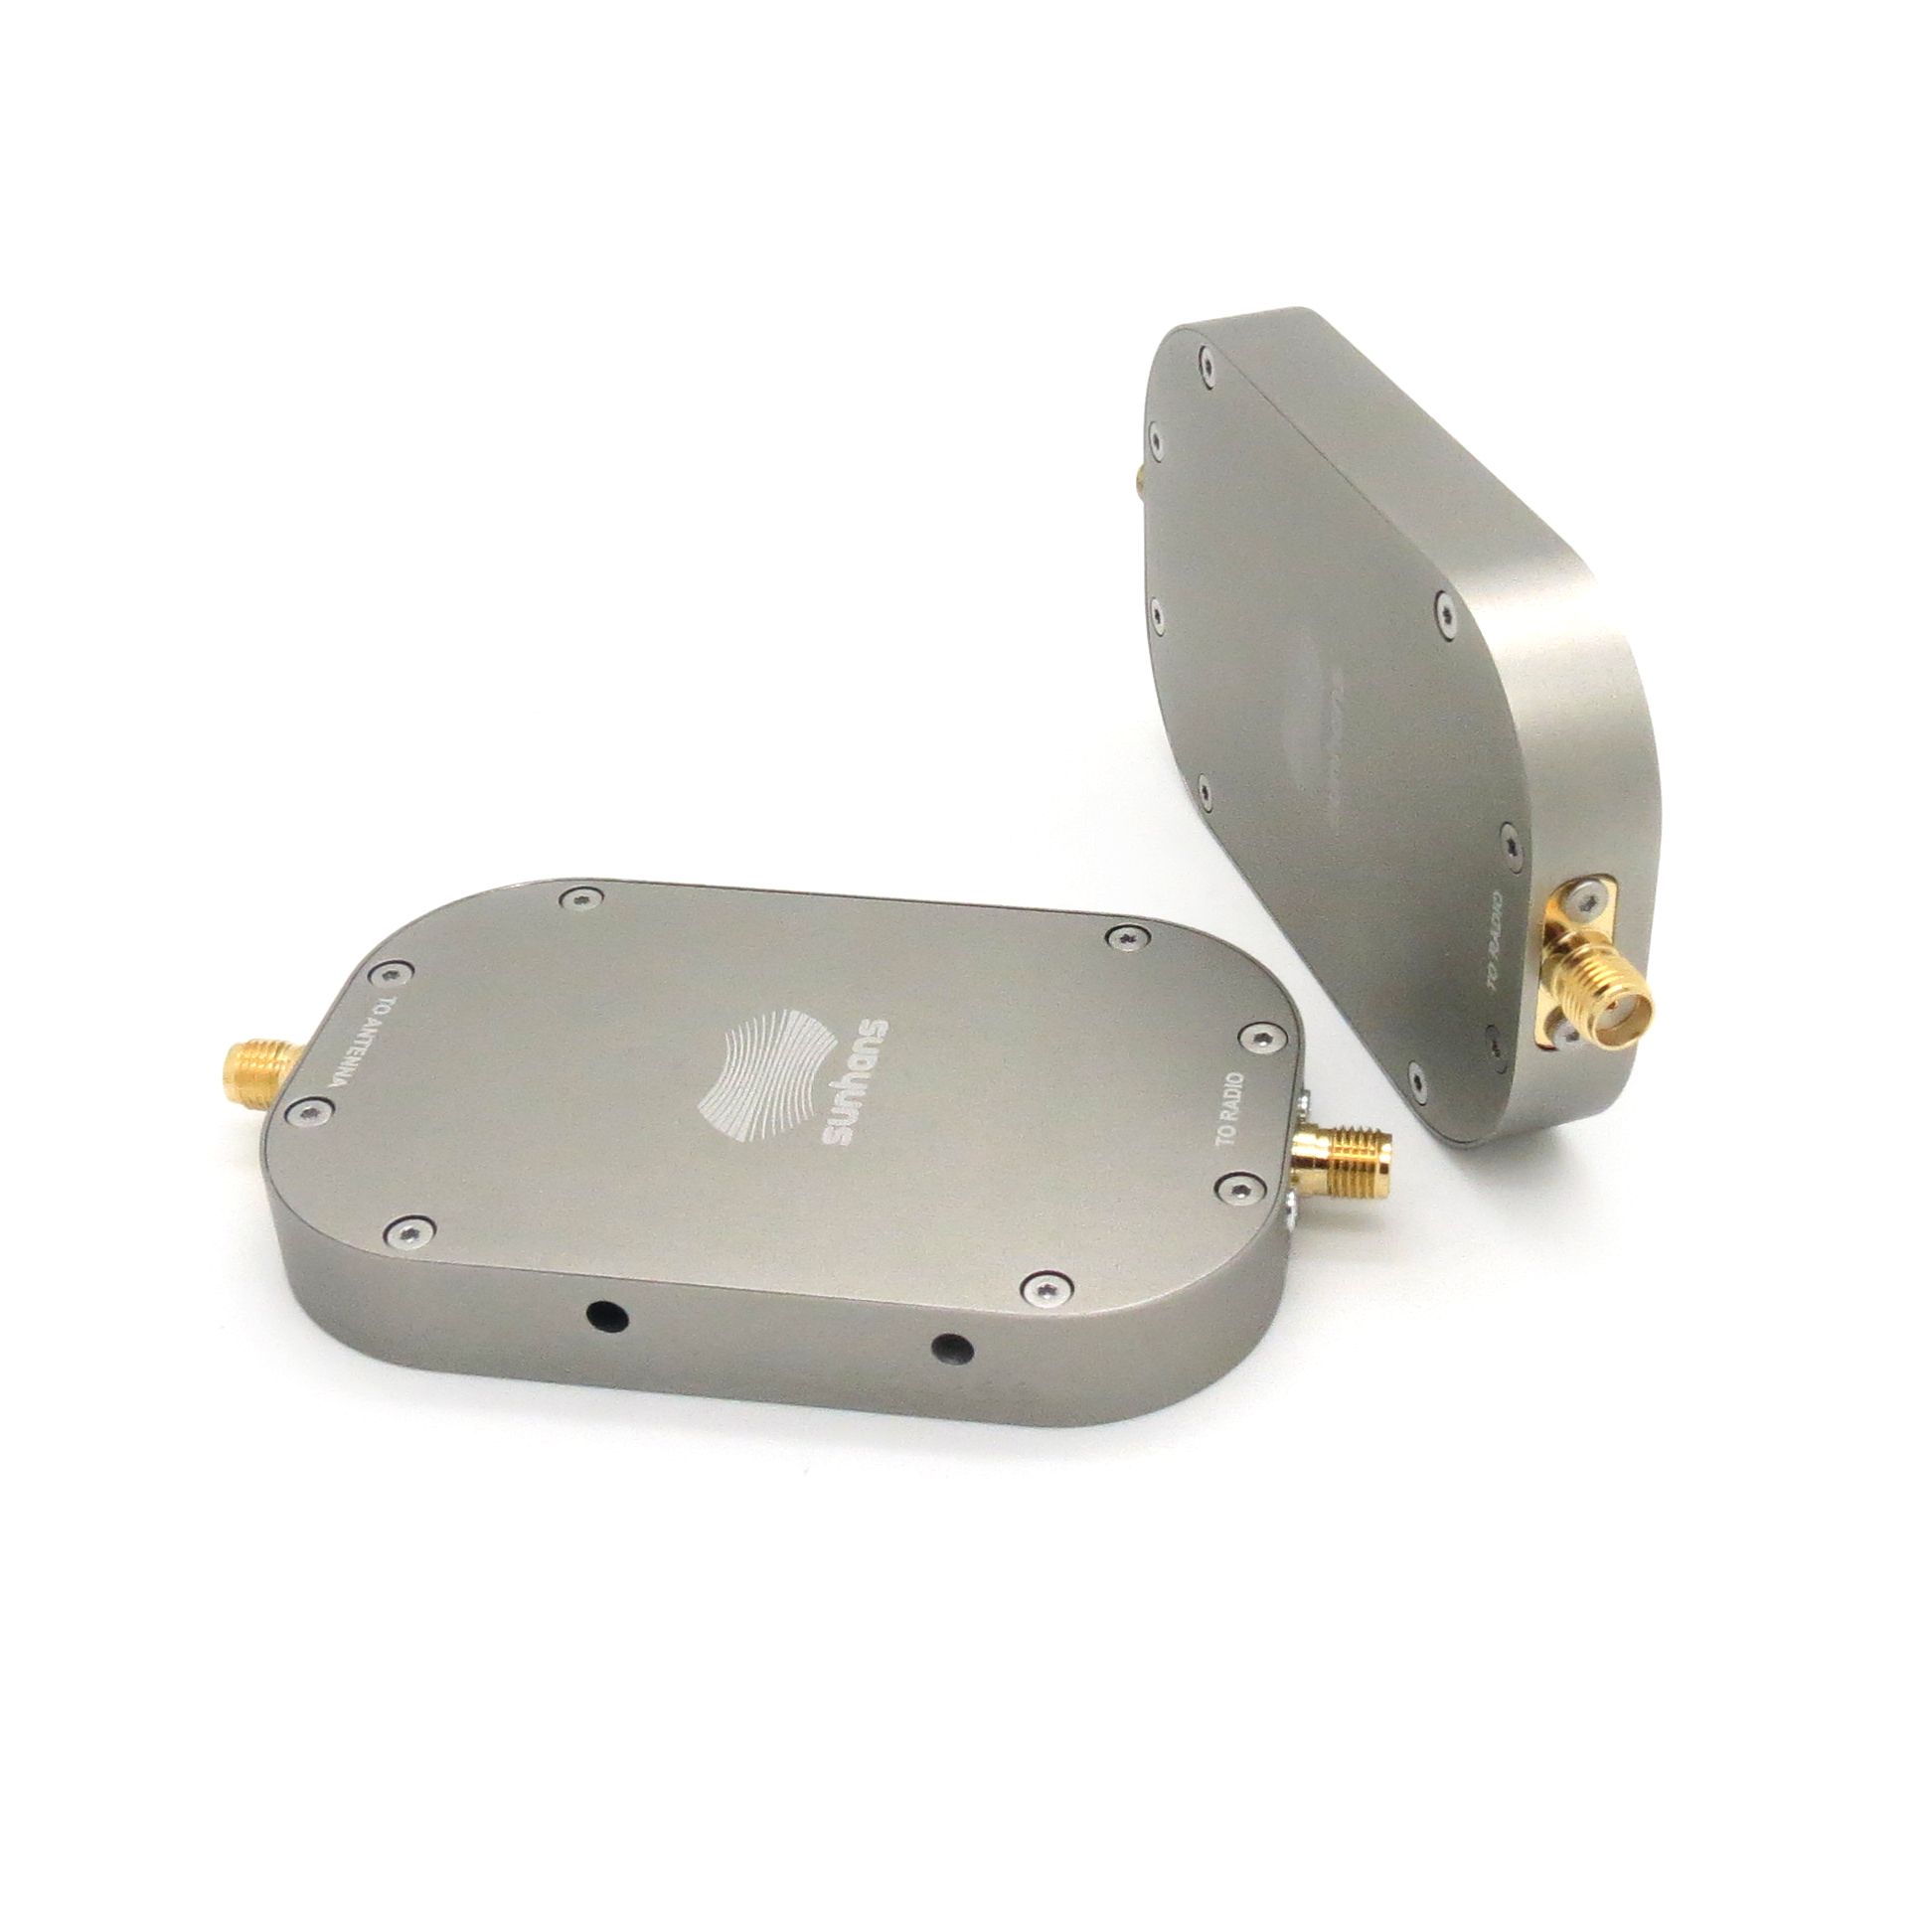 SHRC5824G2WP Free Shipping Dual band Wifi Signal Booster 2 4ghz 5 8ghz Wifi Repeater for font